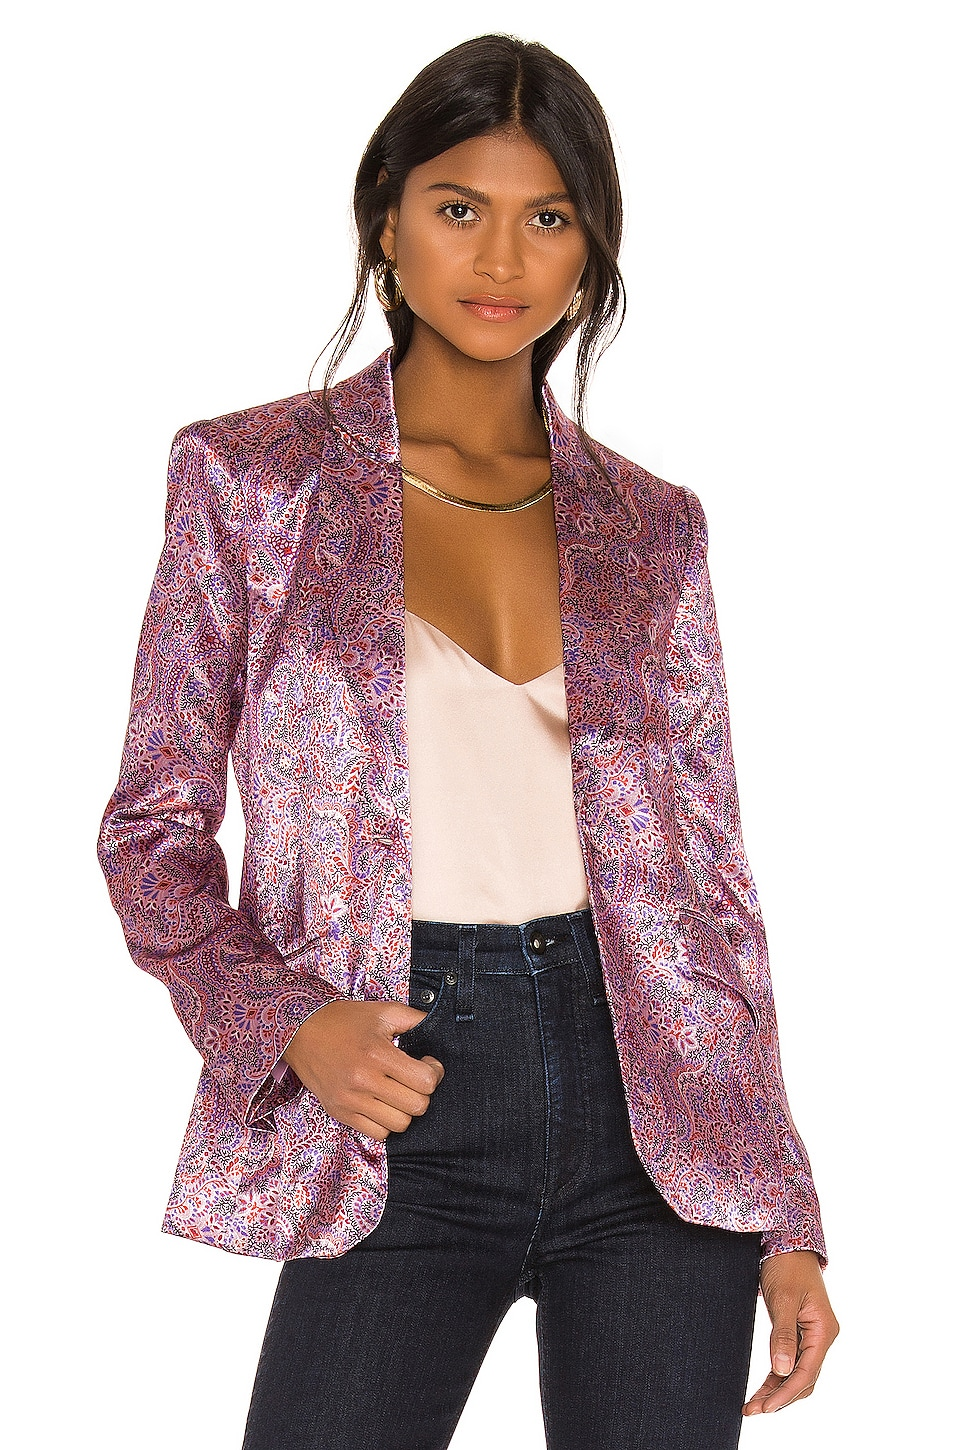 Cinq a Sept Estelle Jacket in Tea Rose Multi